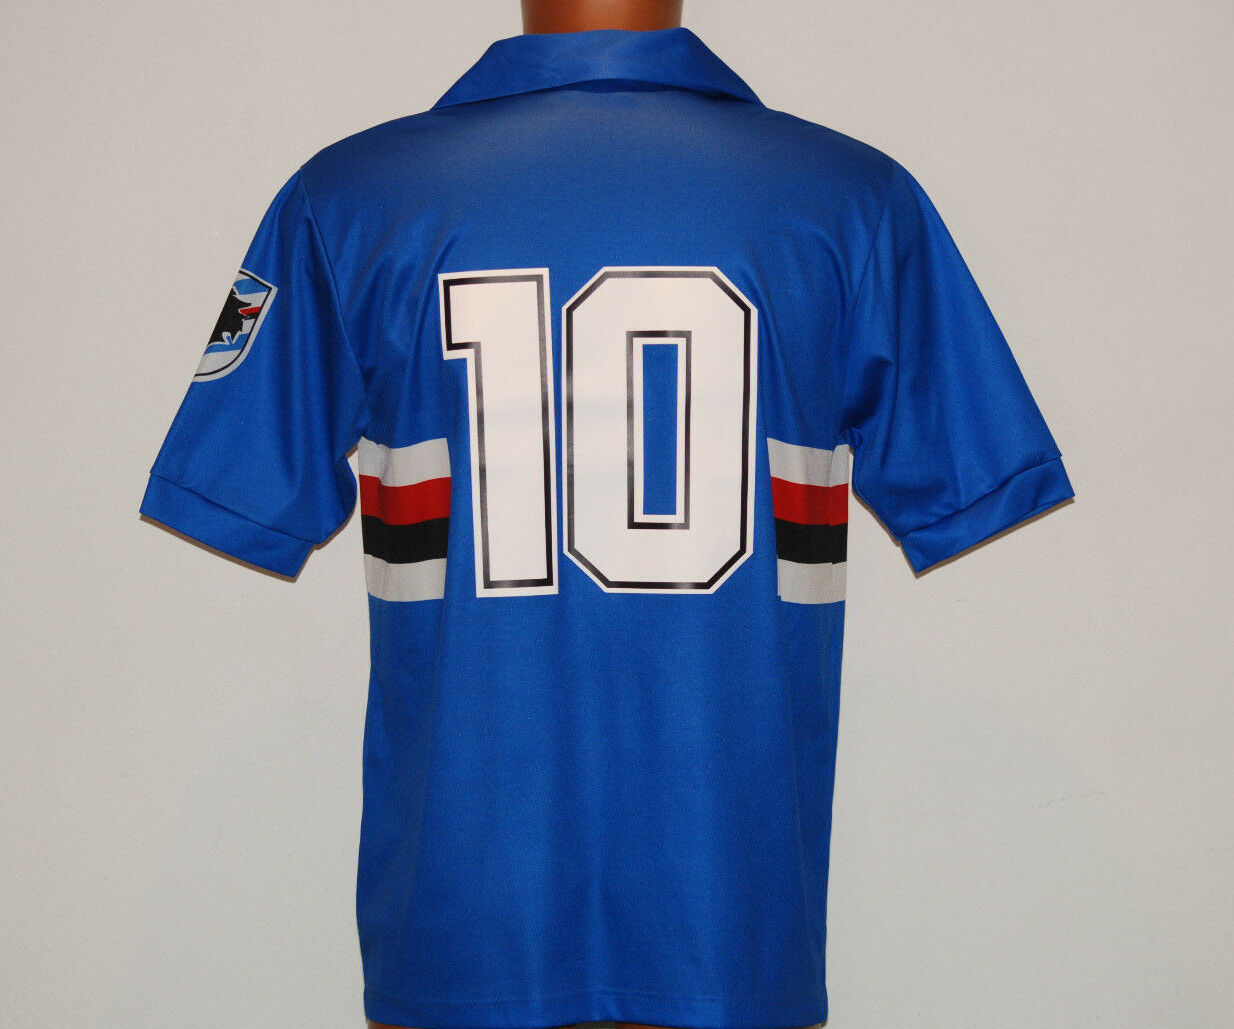 Maglia sampdoria MANCINI asics serie A ERG 9192 no match worn player issue